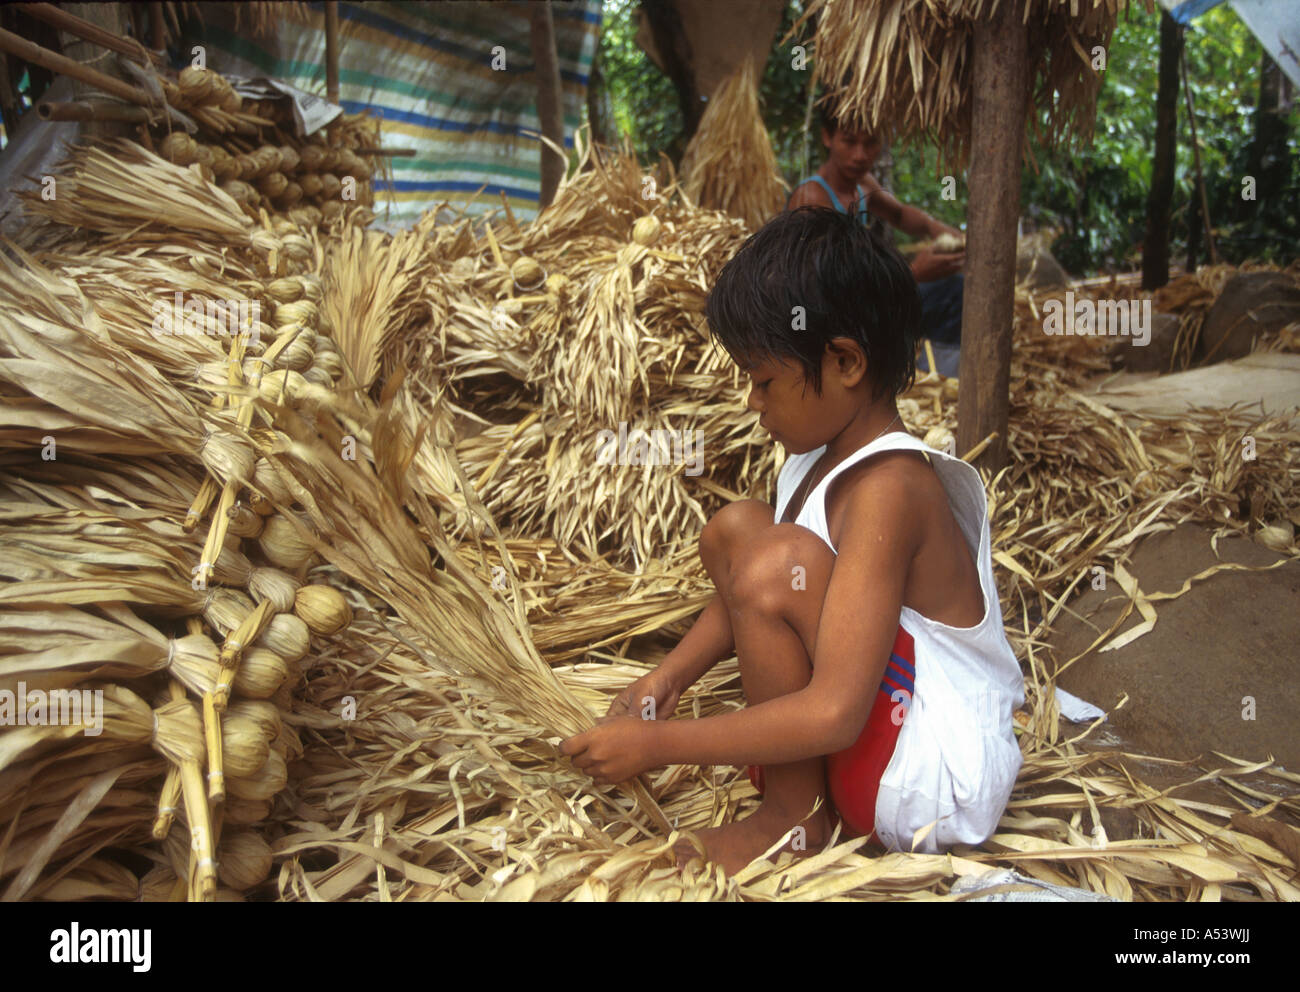 Painet Ha2174 4396 Philippines Boy Making Handicrafts Anaho Fibre